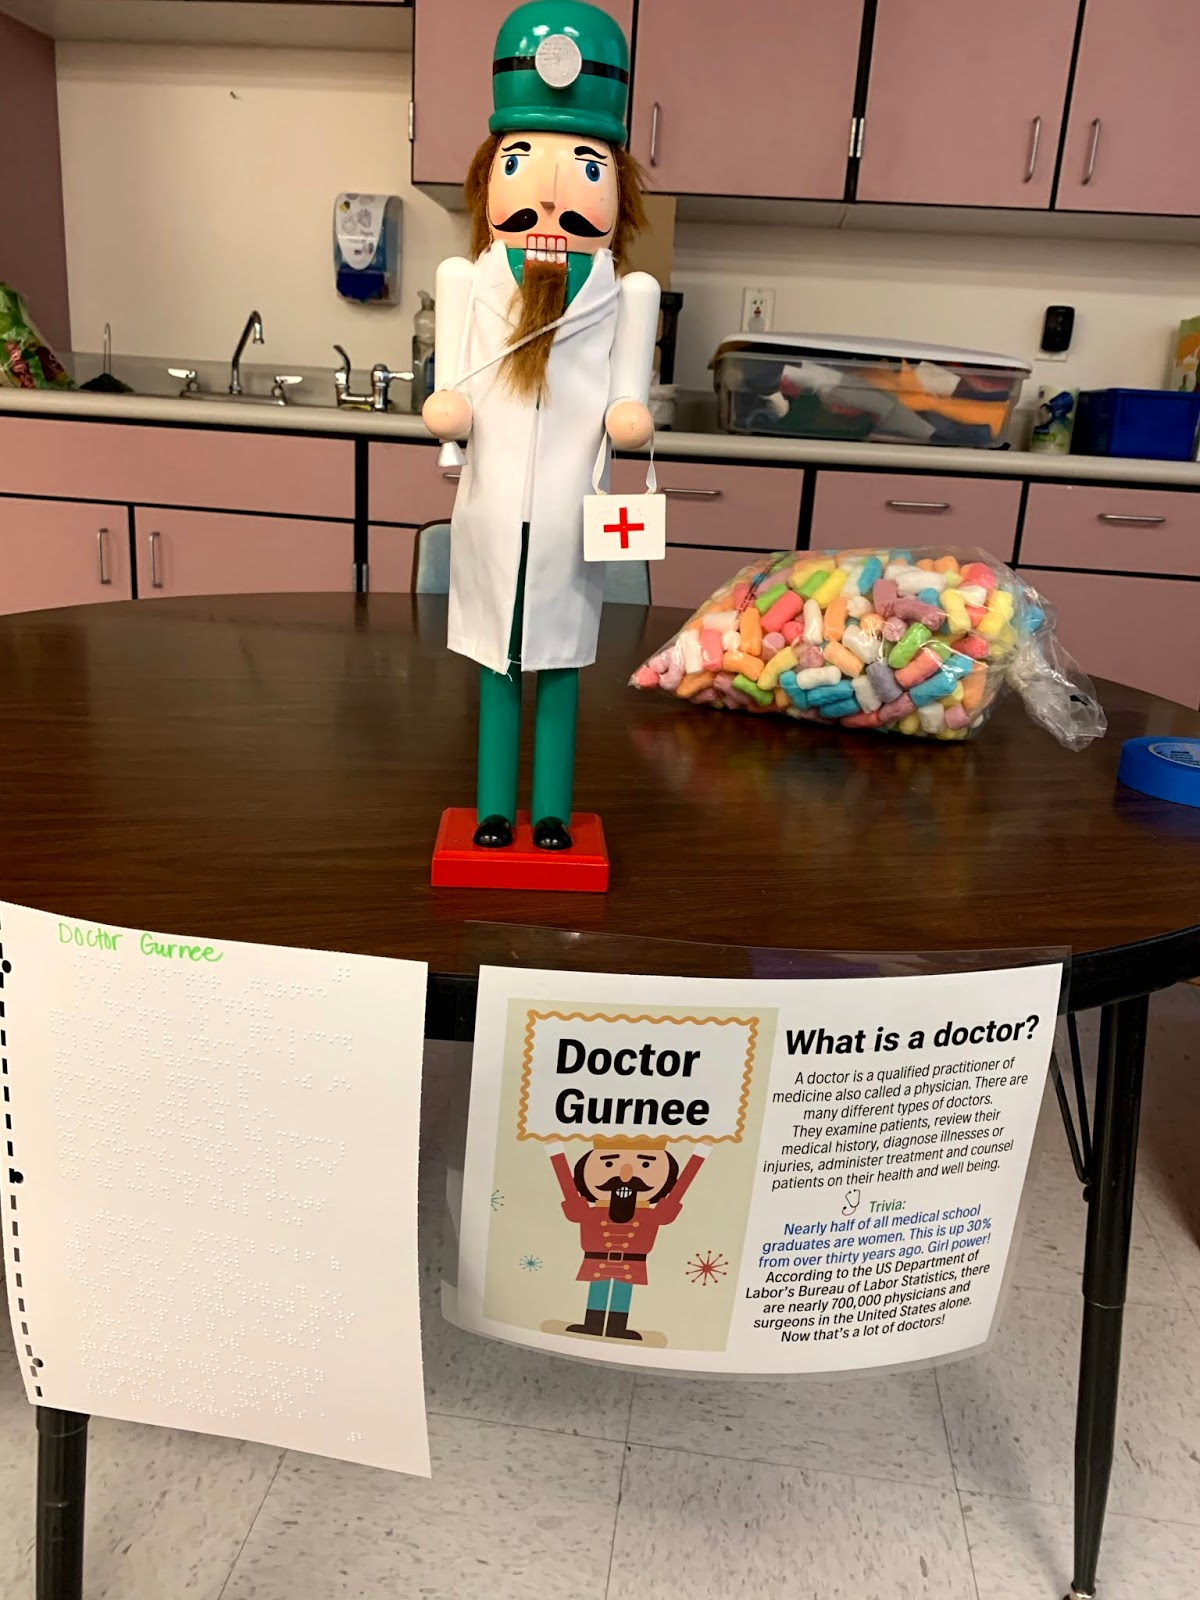 A doctor Nutcracker doll  with a game sign in Braille and print.